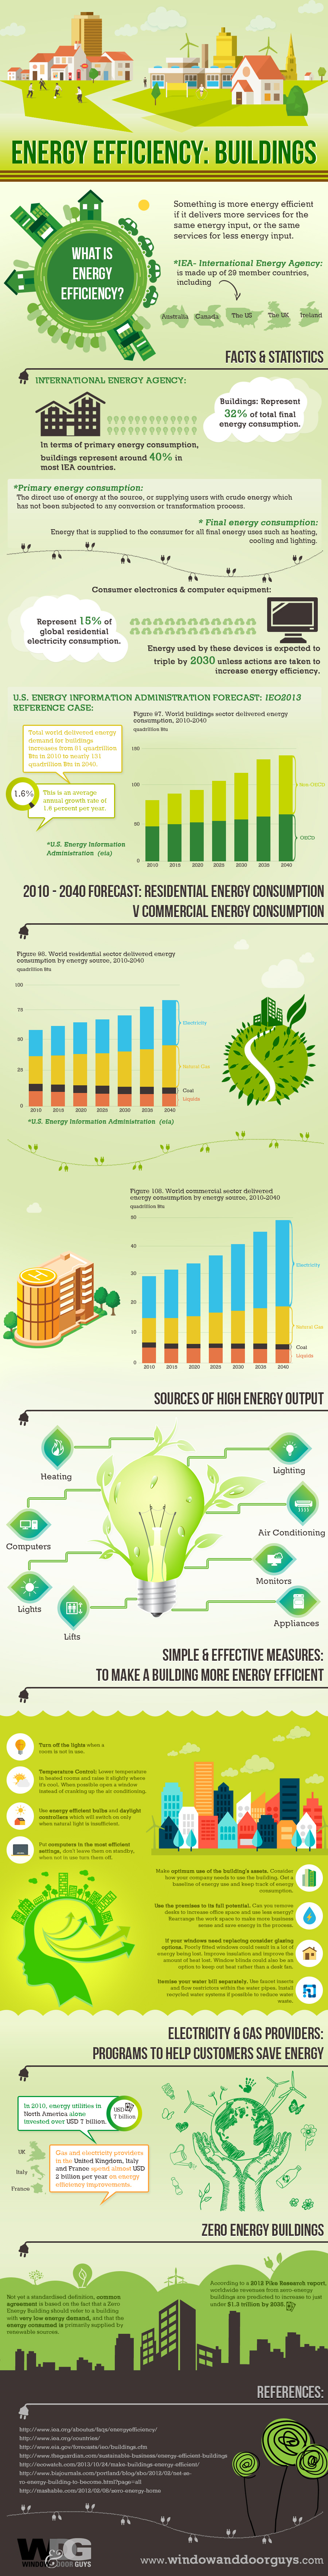 Energy Efficiency: Buildings